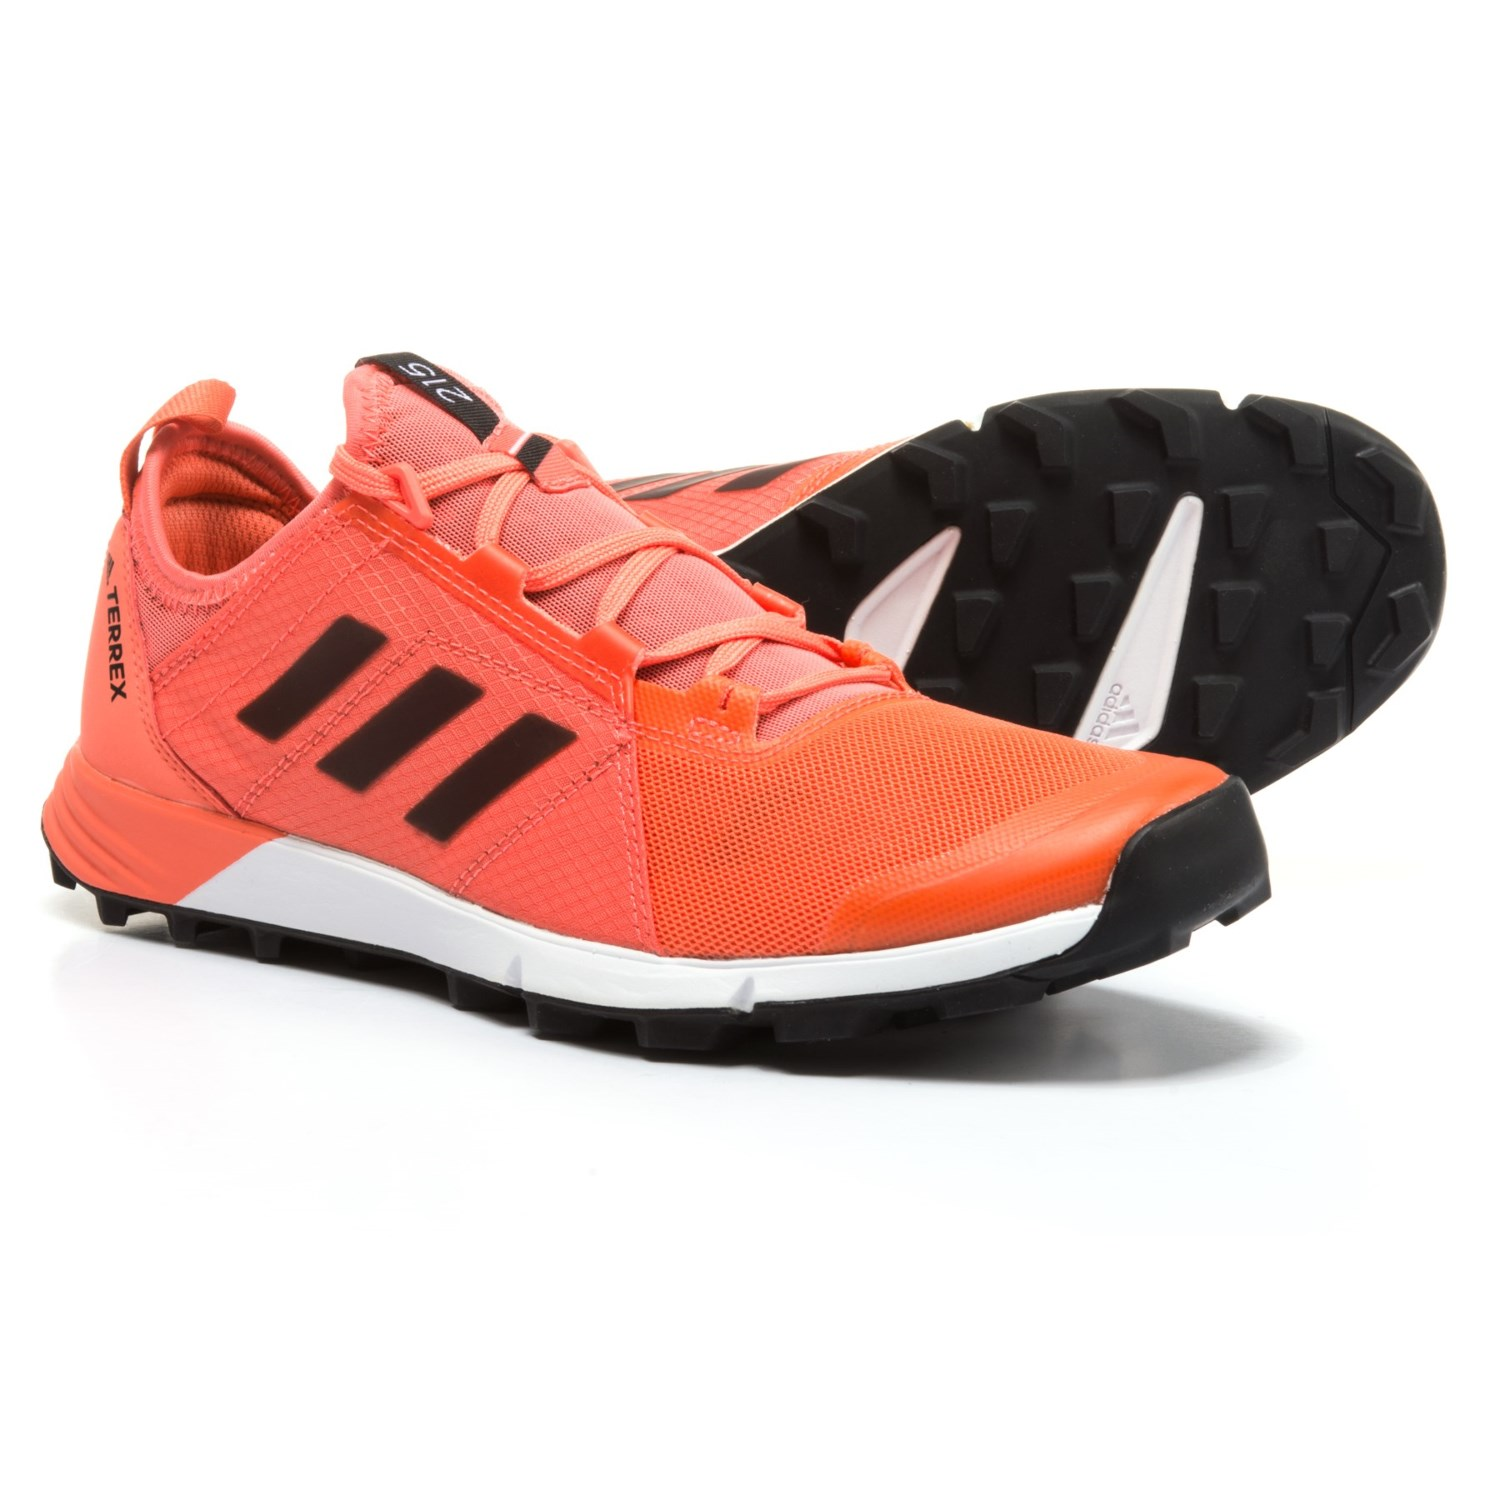 Wode los hombres Trail Running Shoes | GO Outdoors